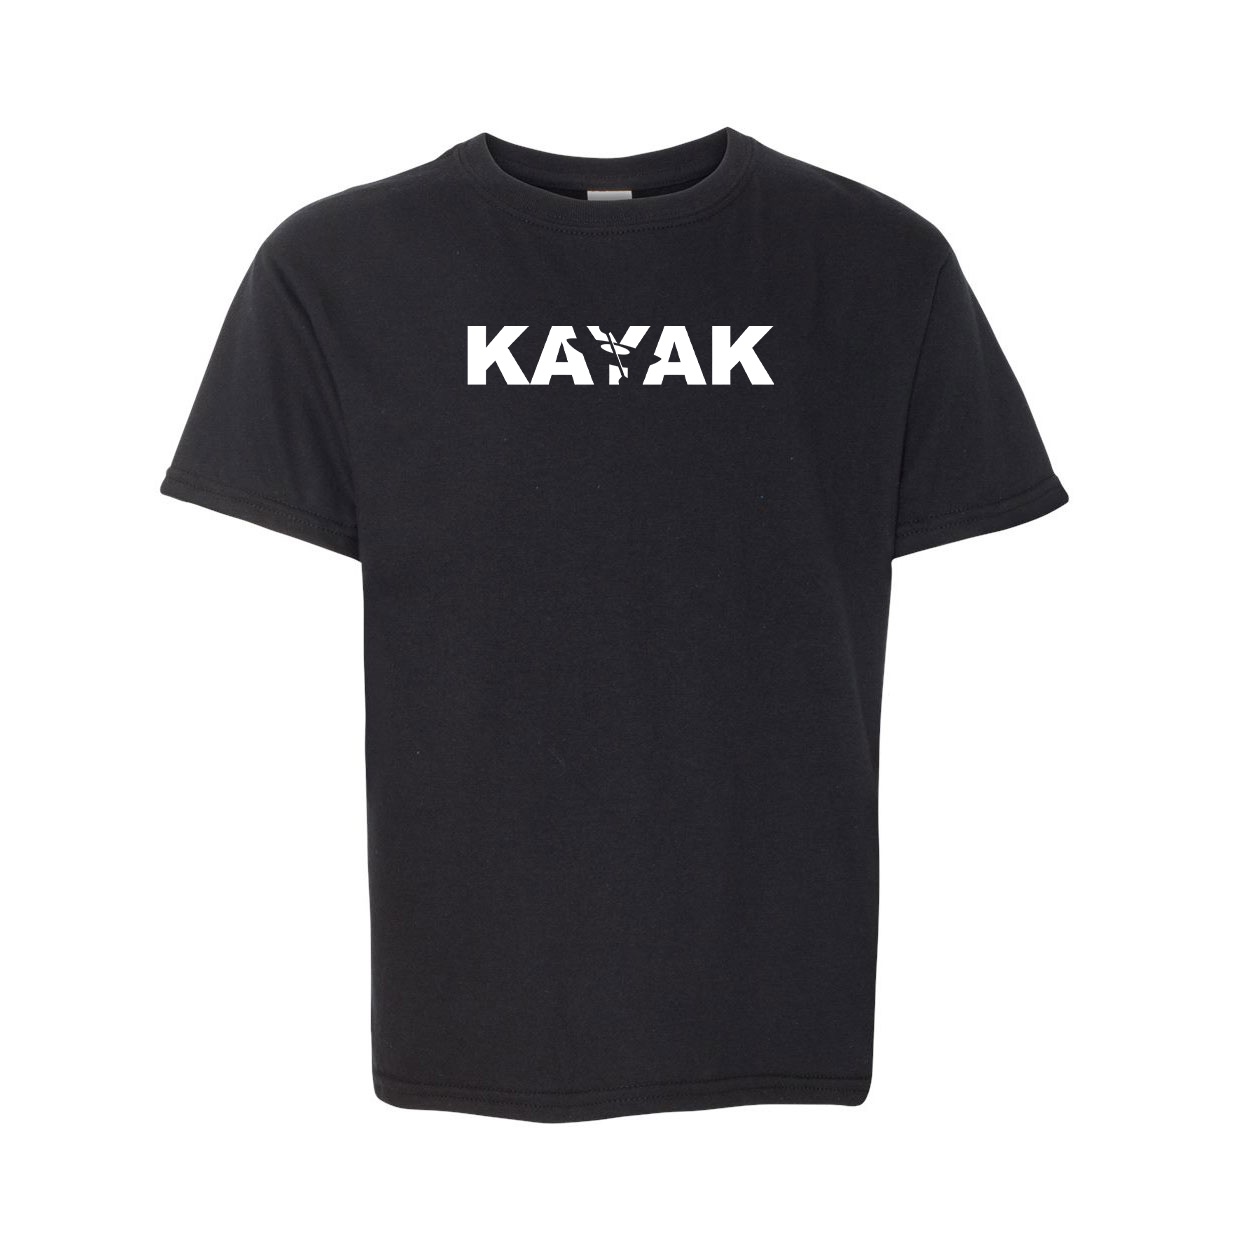 Kayak Hull Logo Classic Youth T-Shirt Black (White Logo)